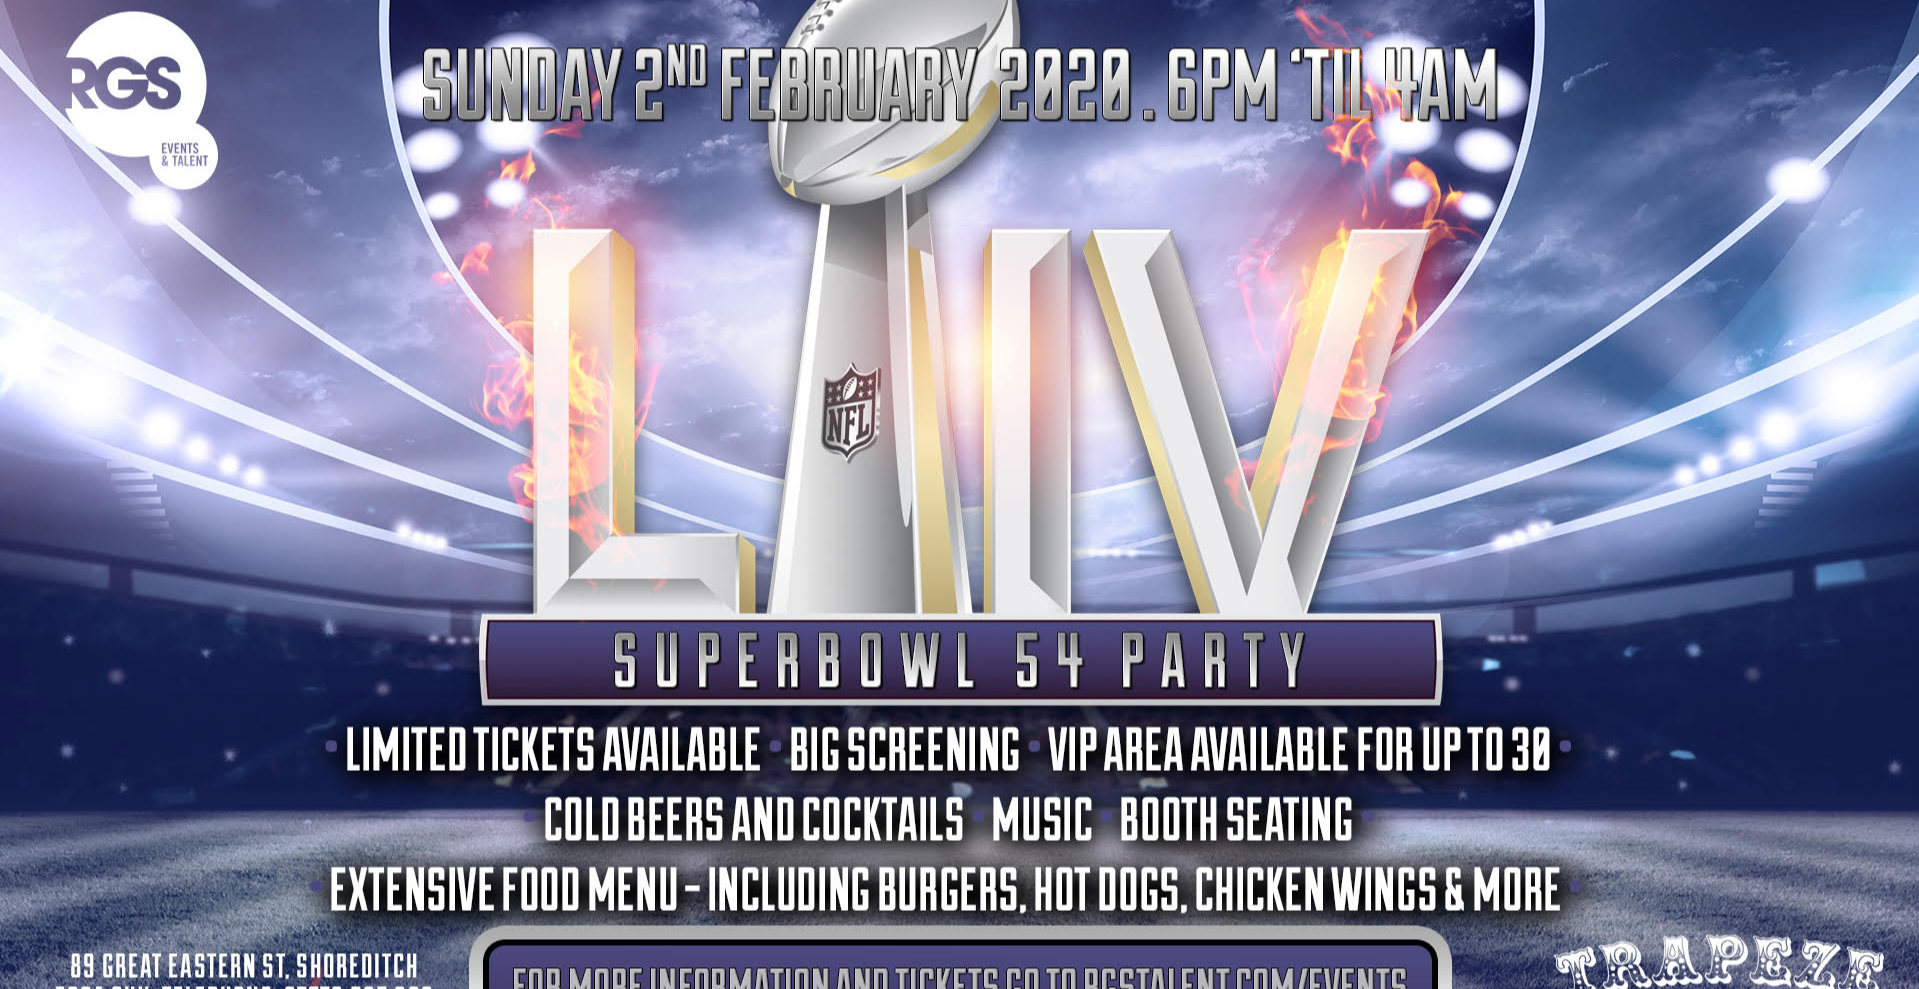 Superbowl 54 Big Screen Party in London